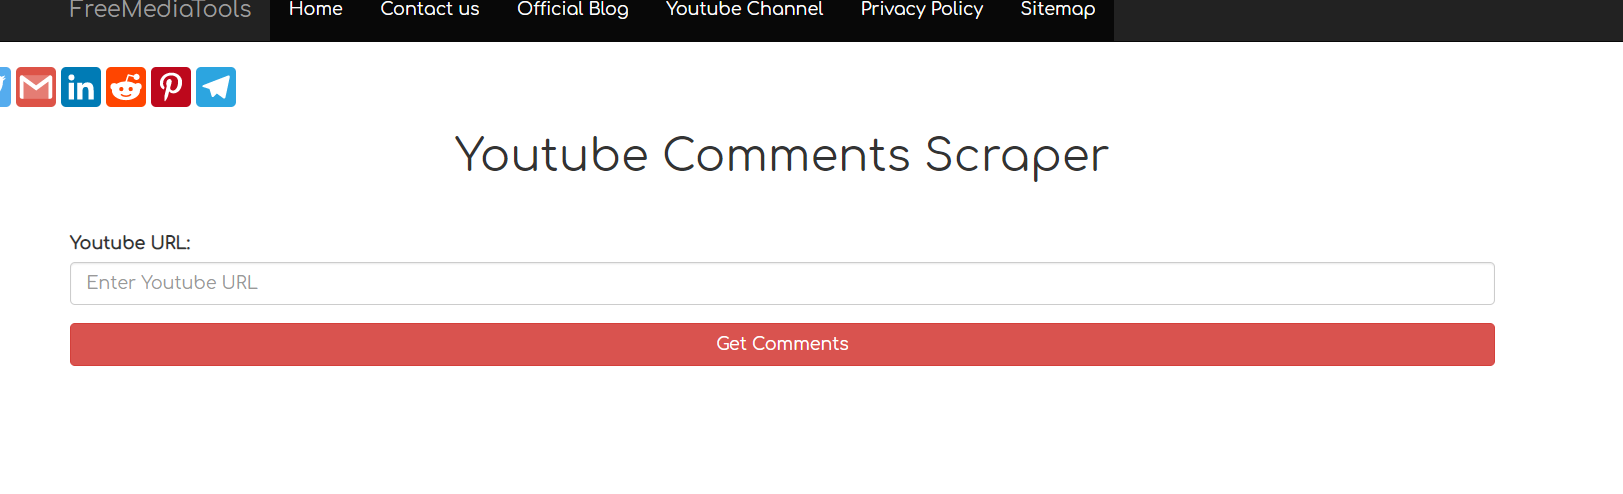 Build a Online Youtube Comments Scraper in Node.js and Puppeteer – Downloads Comments in TXT File Full Project For Beginners